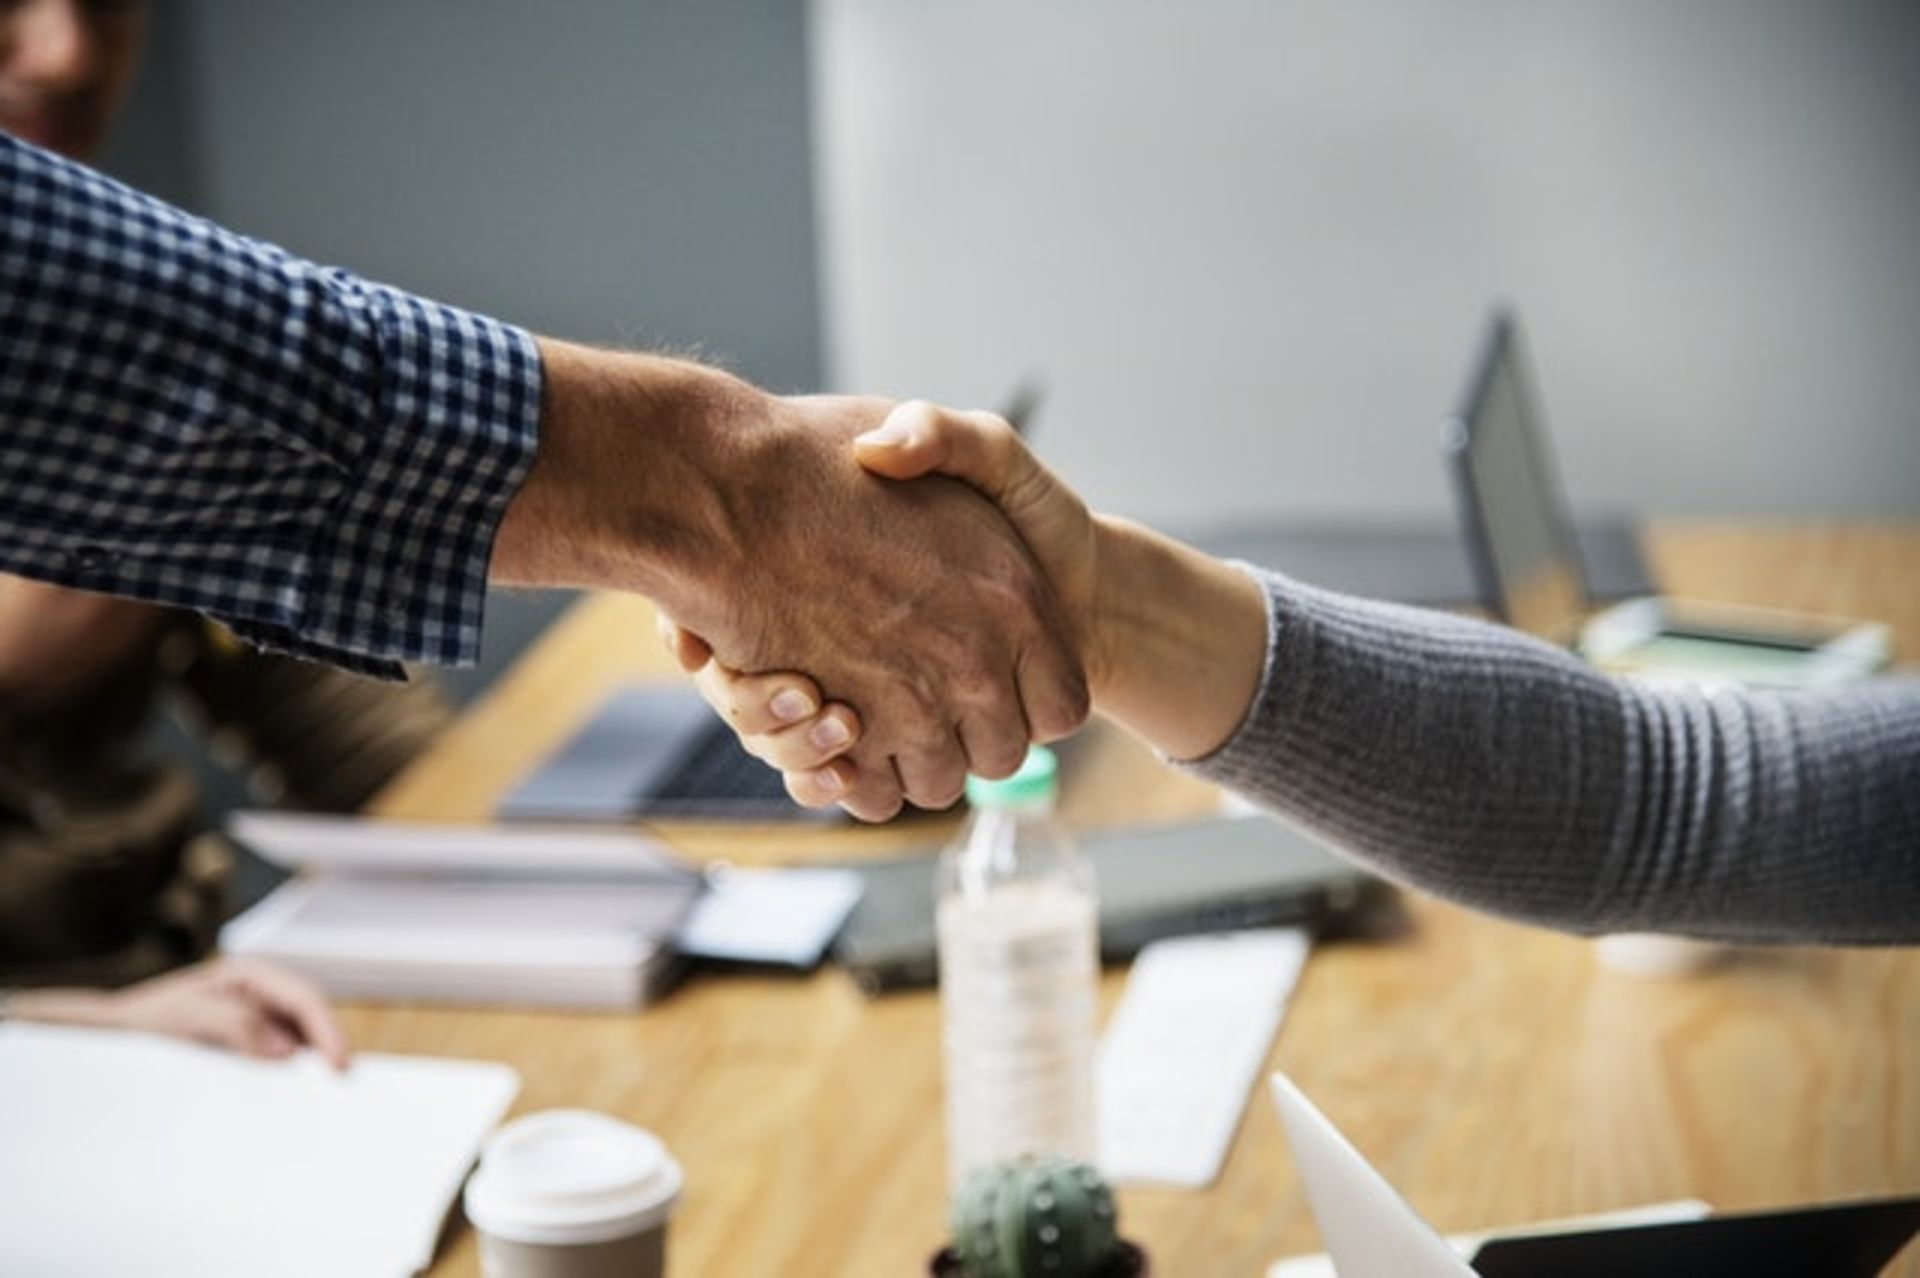 5 Reasons to Consider Using a Real Estate Professional